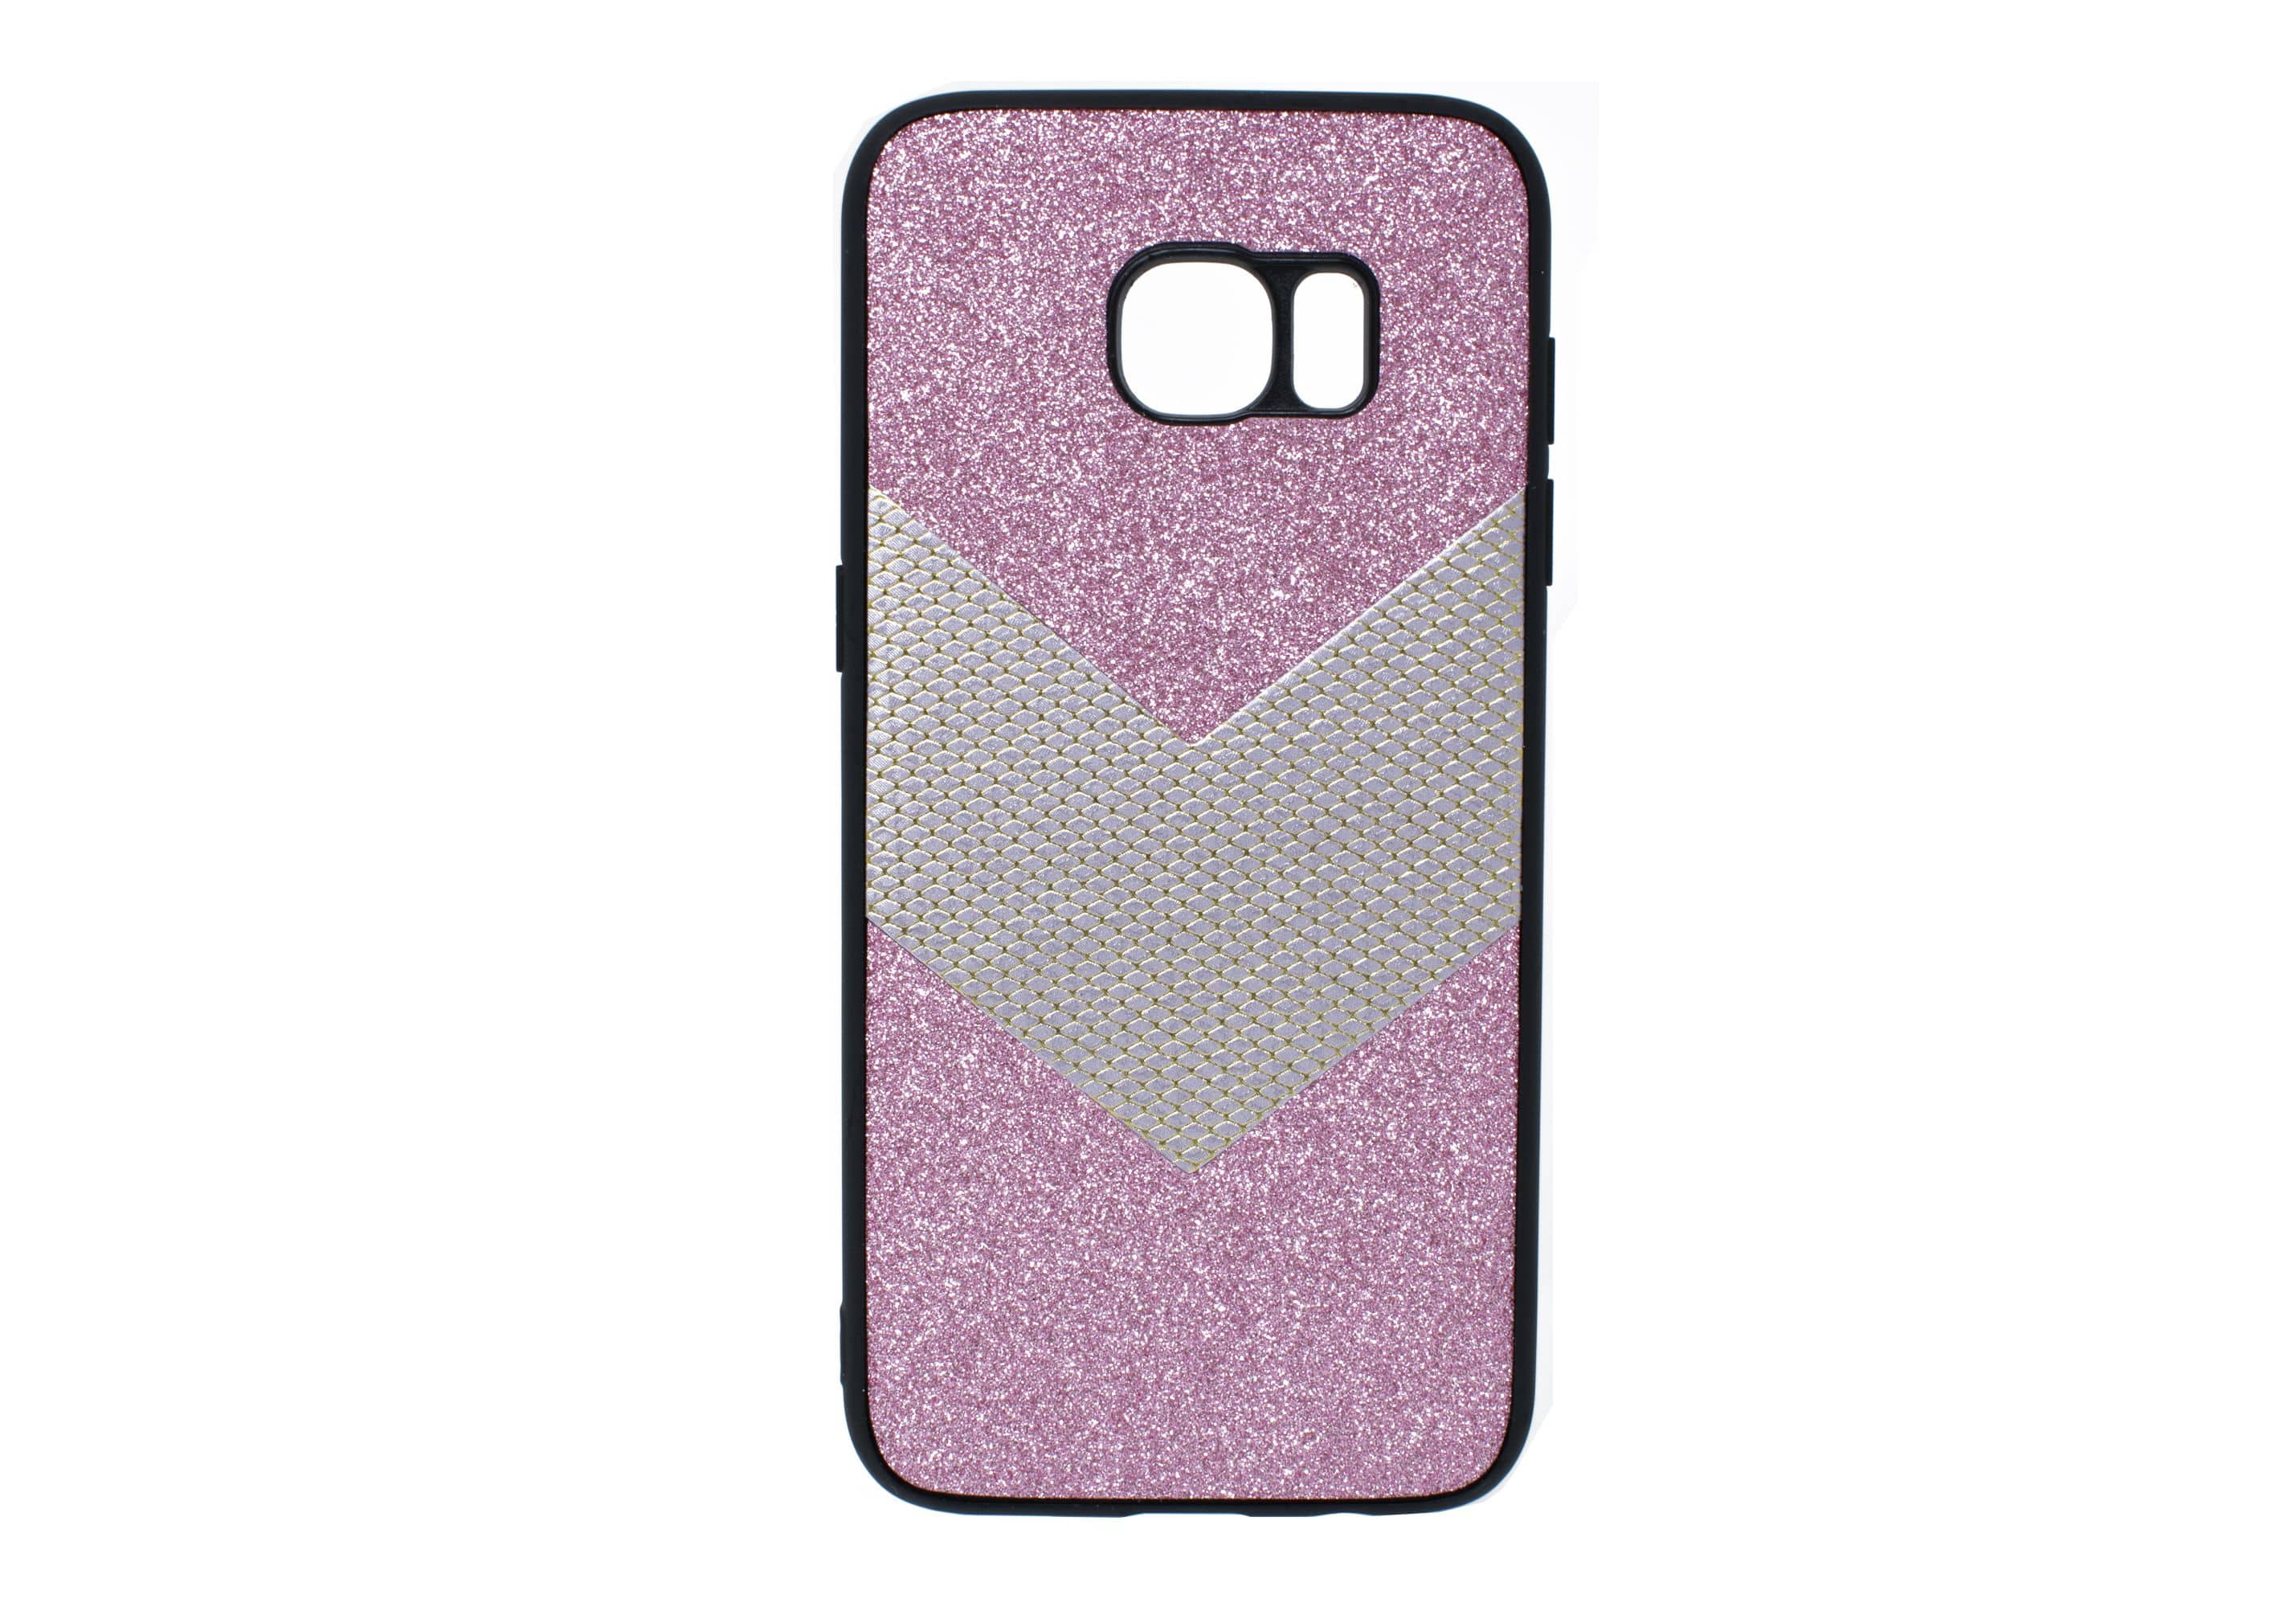 Samsung Galaxy S9 Pink Glitter with Silver Arrow Case